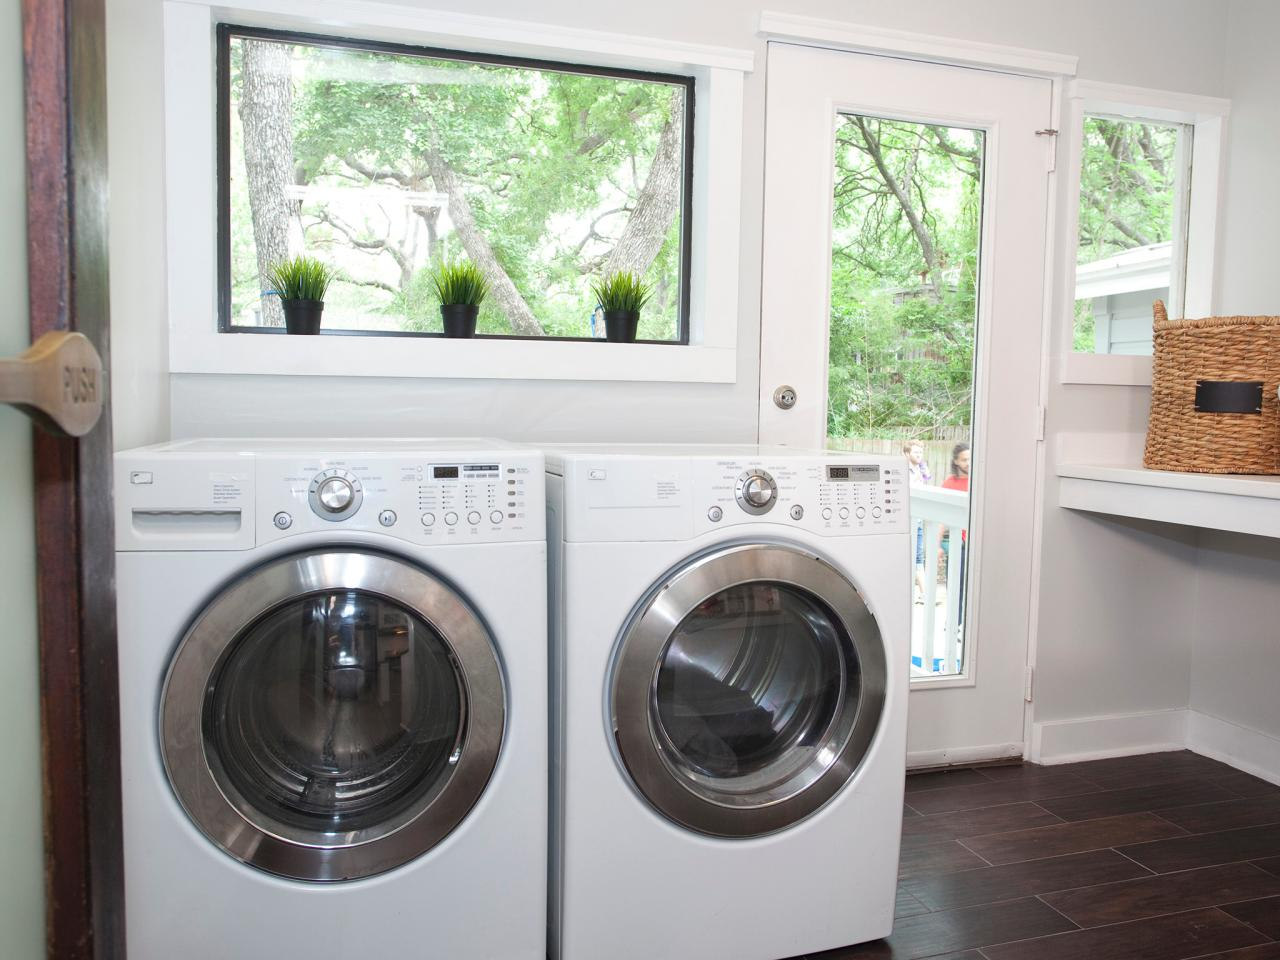 Laundry Room Layouts Pictures Options Tips Ideas HGTV - Bathroom laundry room design ideas